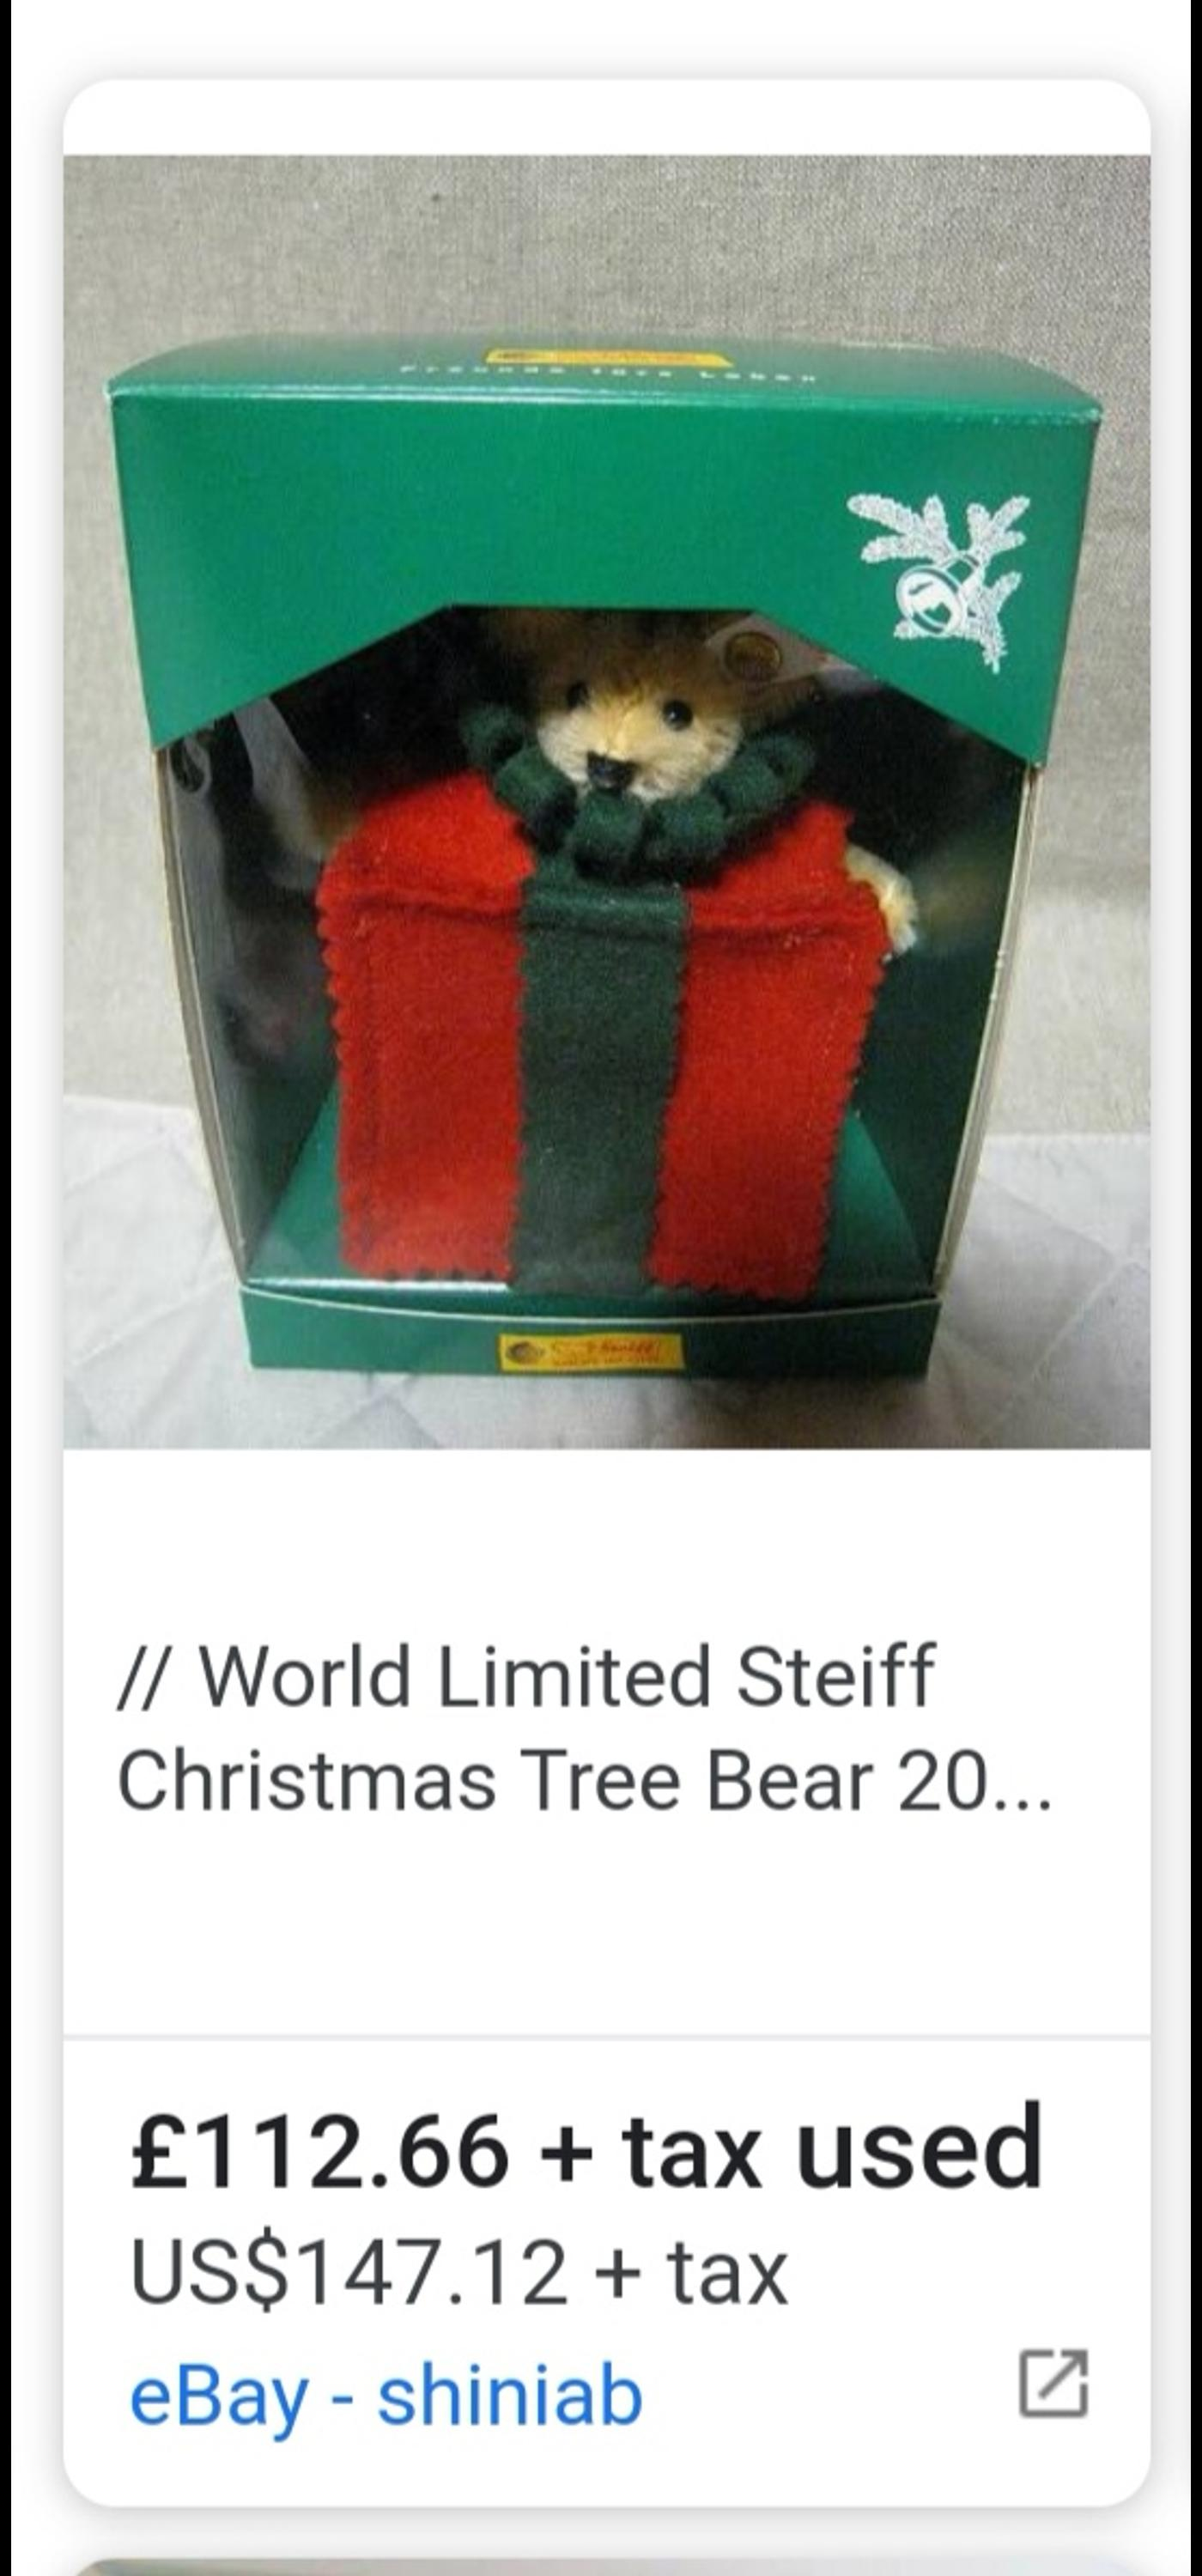 Steiff Christmas tree bear 2000 - limited edition of 5000 - light blond 11cm - number 1397 - in box  Collection Calverton ng14 or netherfield ng4